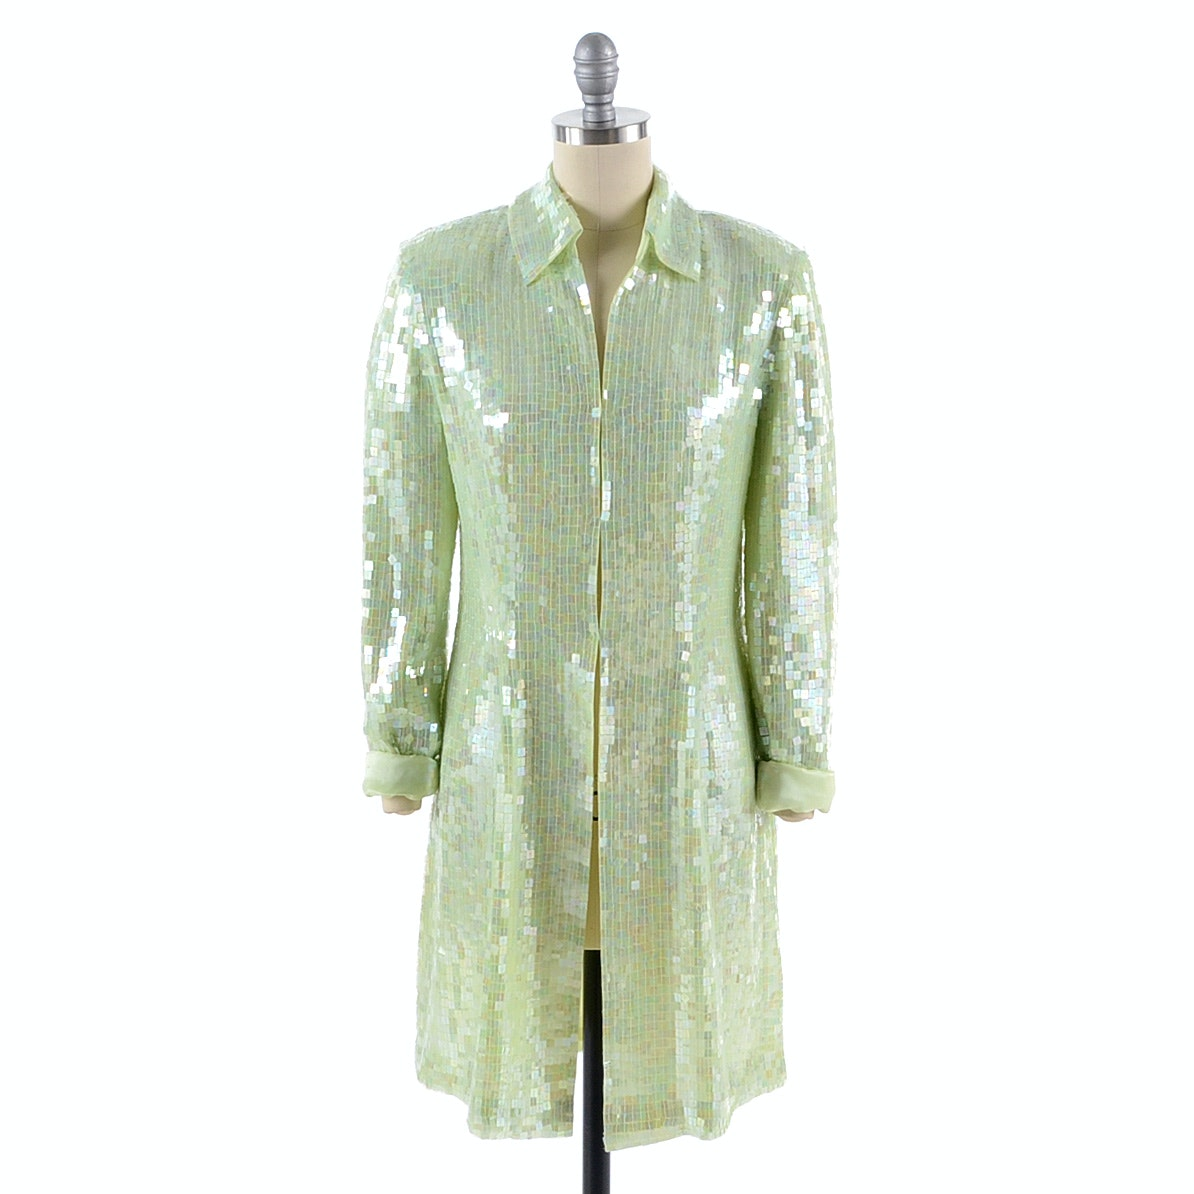 Basix II Celadon Silk Long Dress Jacket Embellished with Square Iridescent Sequins